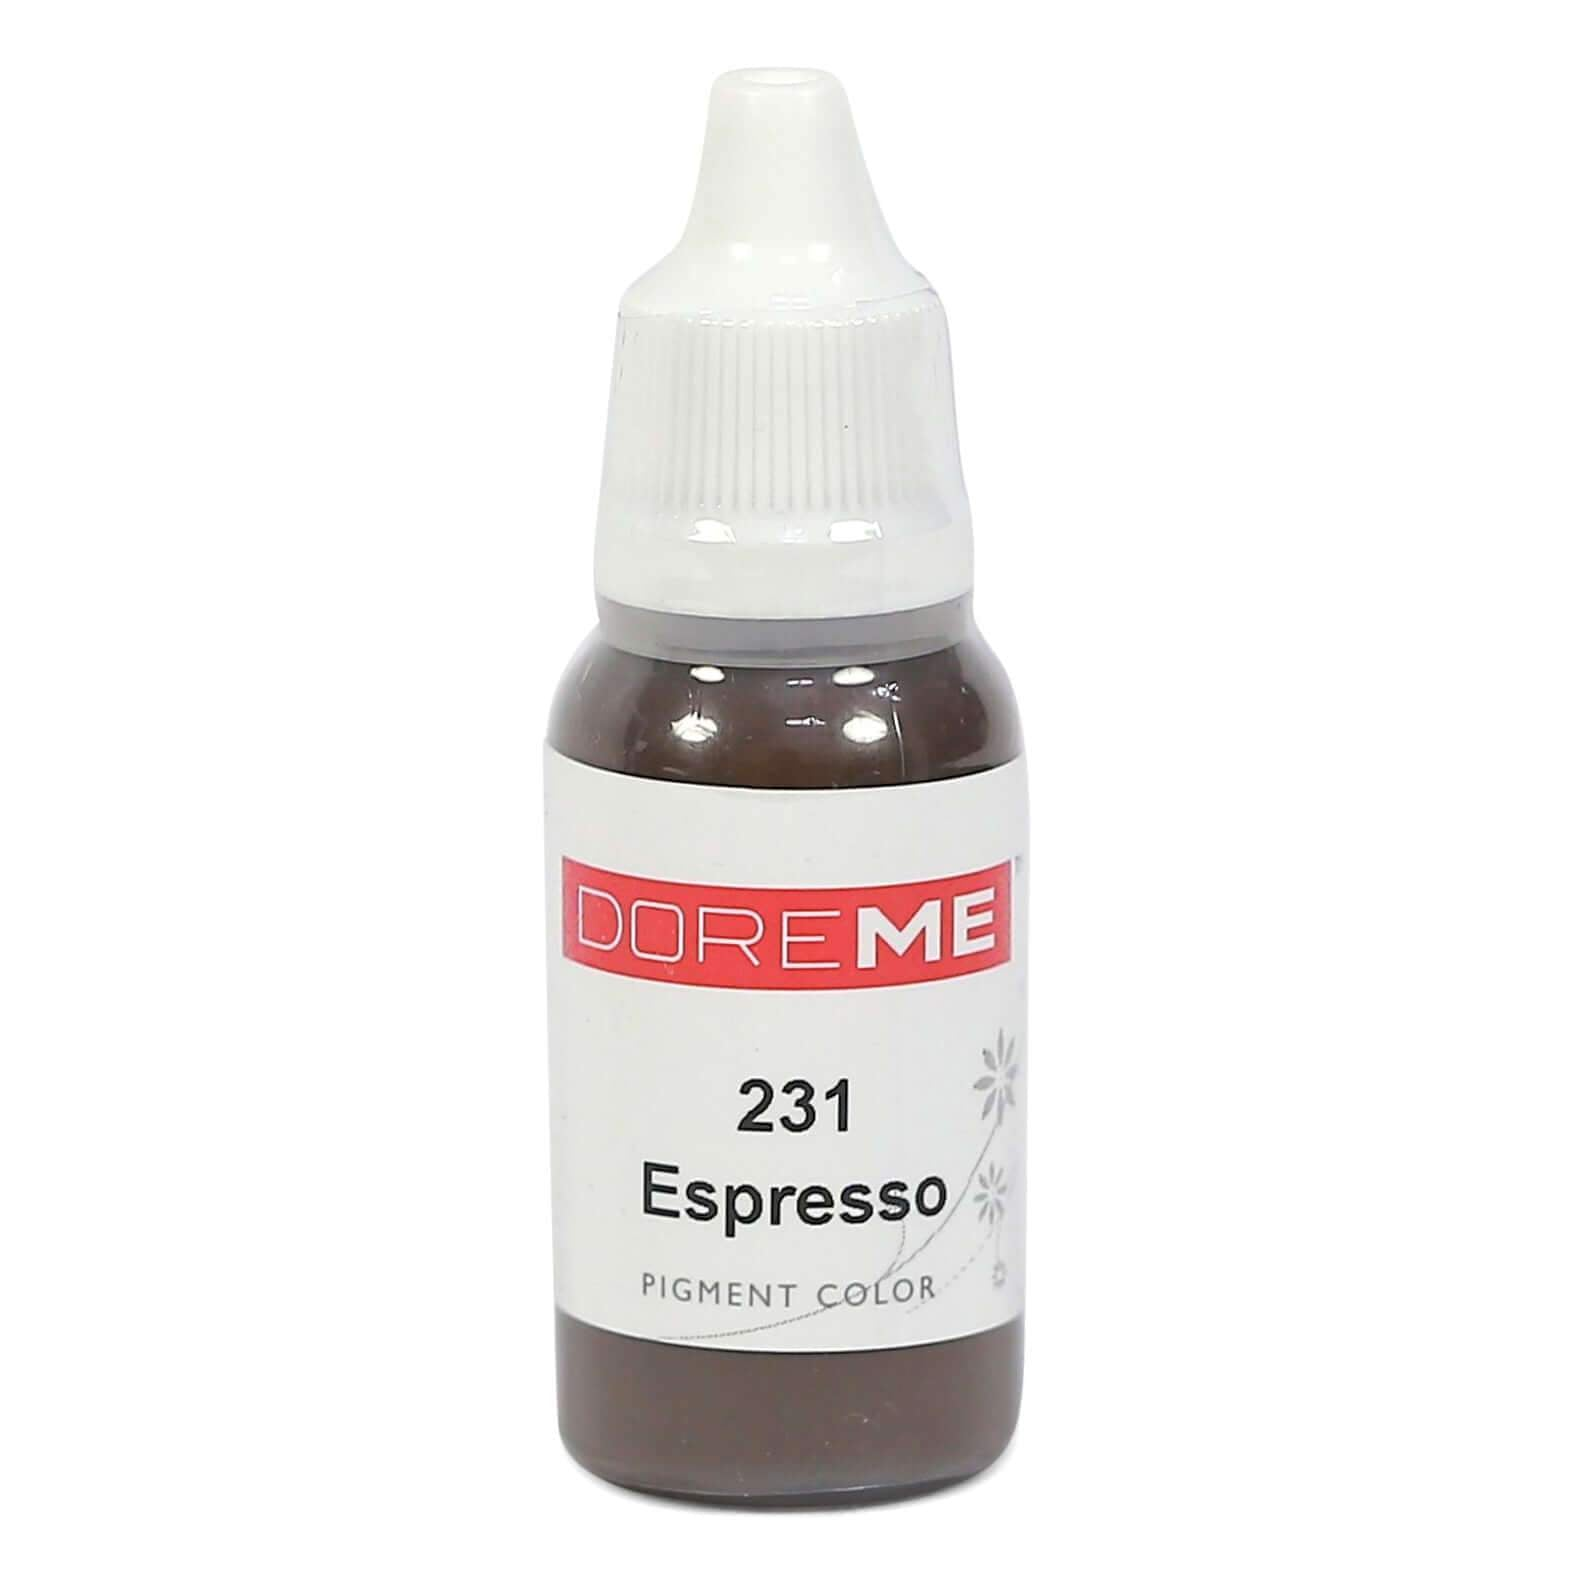 Permanent Makeup pigments Doreme Micropigmentation Eyebrow, Eyeliner, Lip Colours 231 Espresso (c) - Beautiful Ink UK trade and wholesale supplier